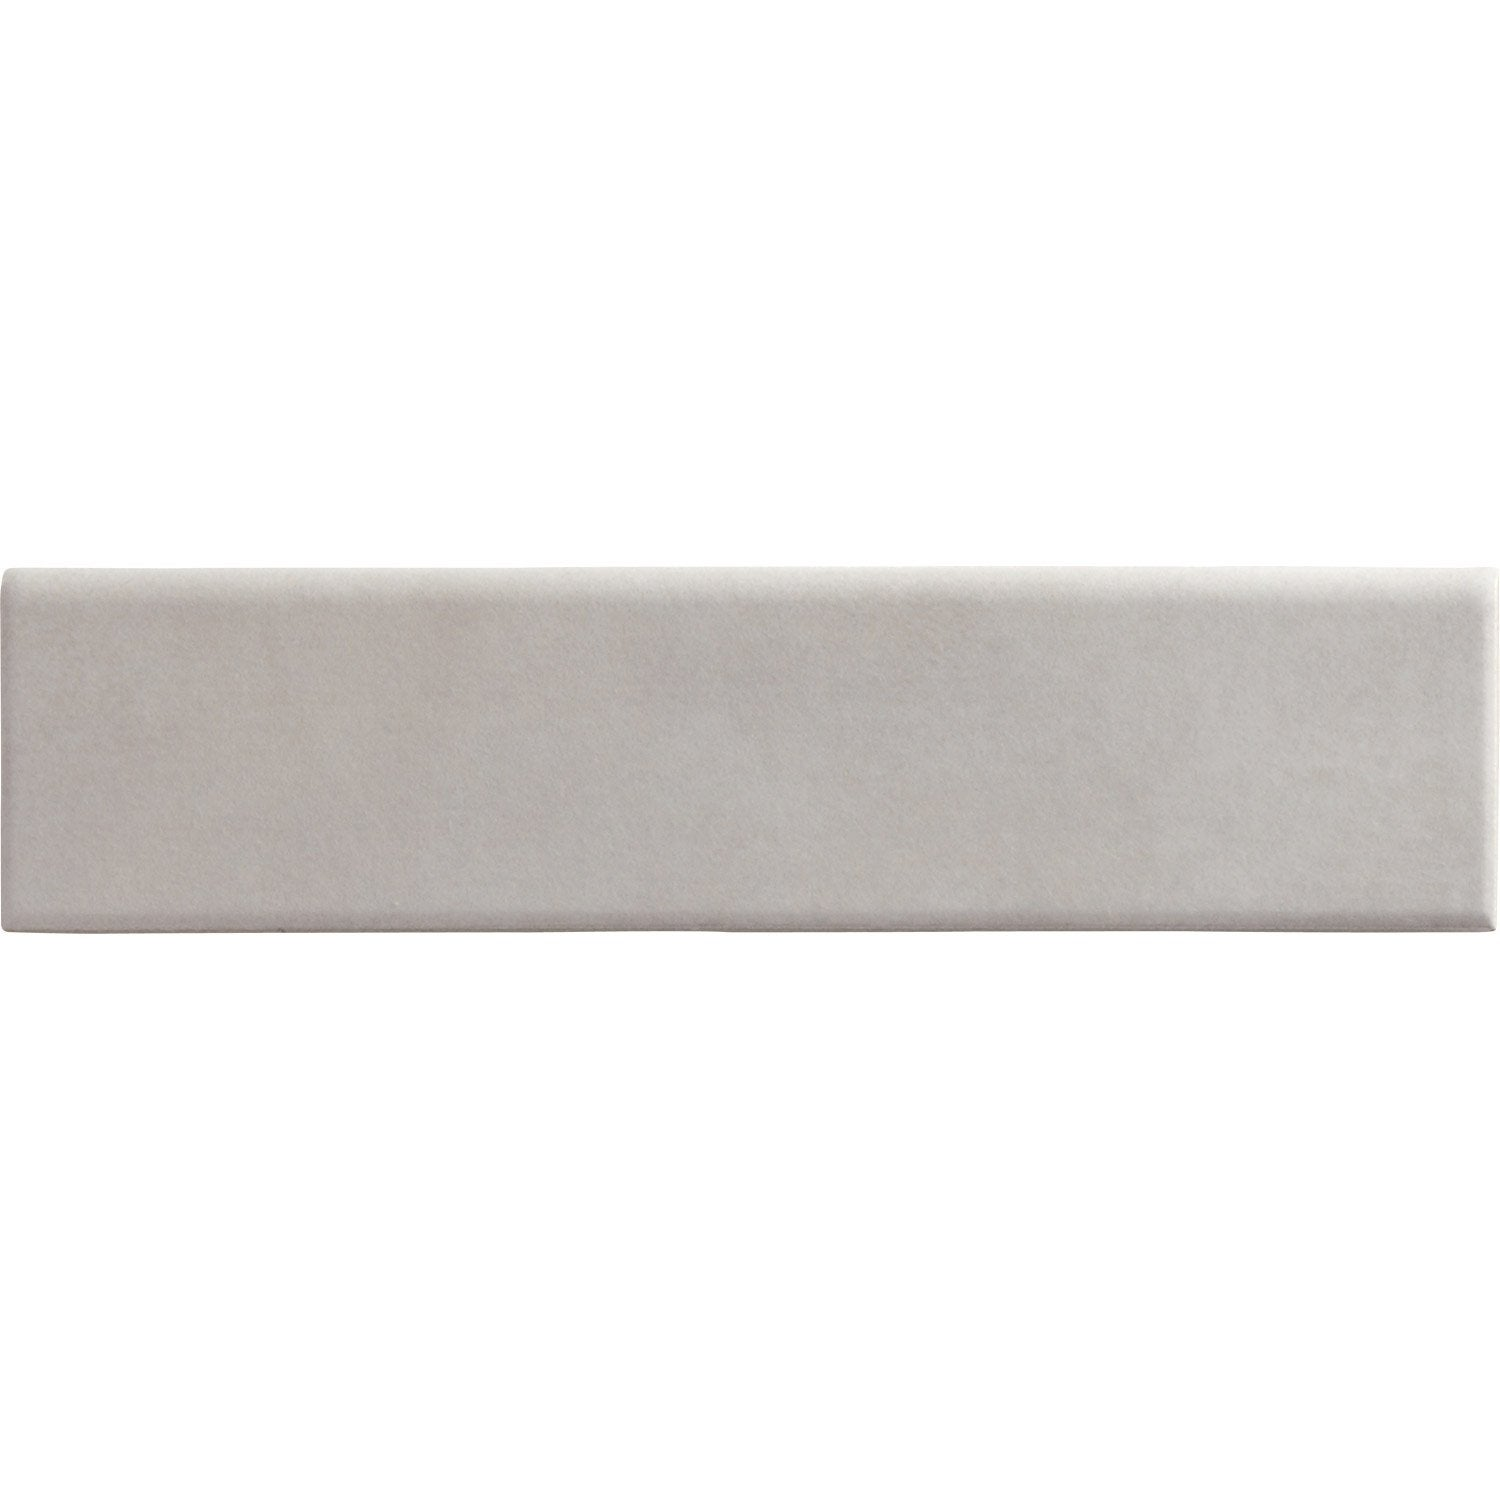 Carrelage design plinthe carrelage leroy merlin for Plinthe carrelage blanc